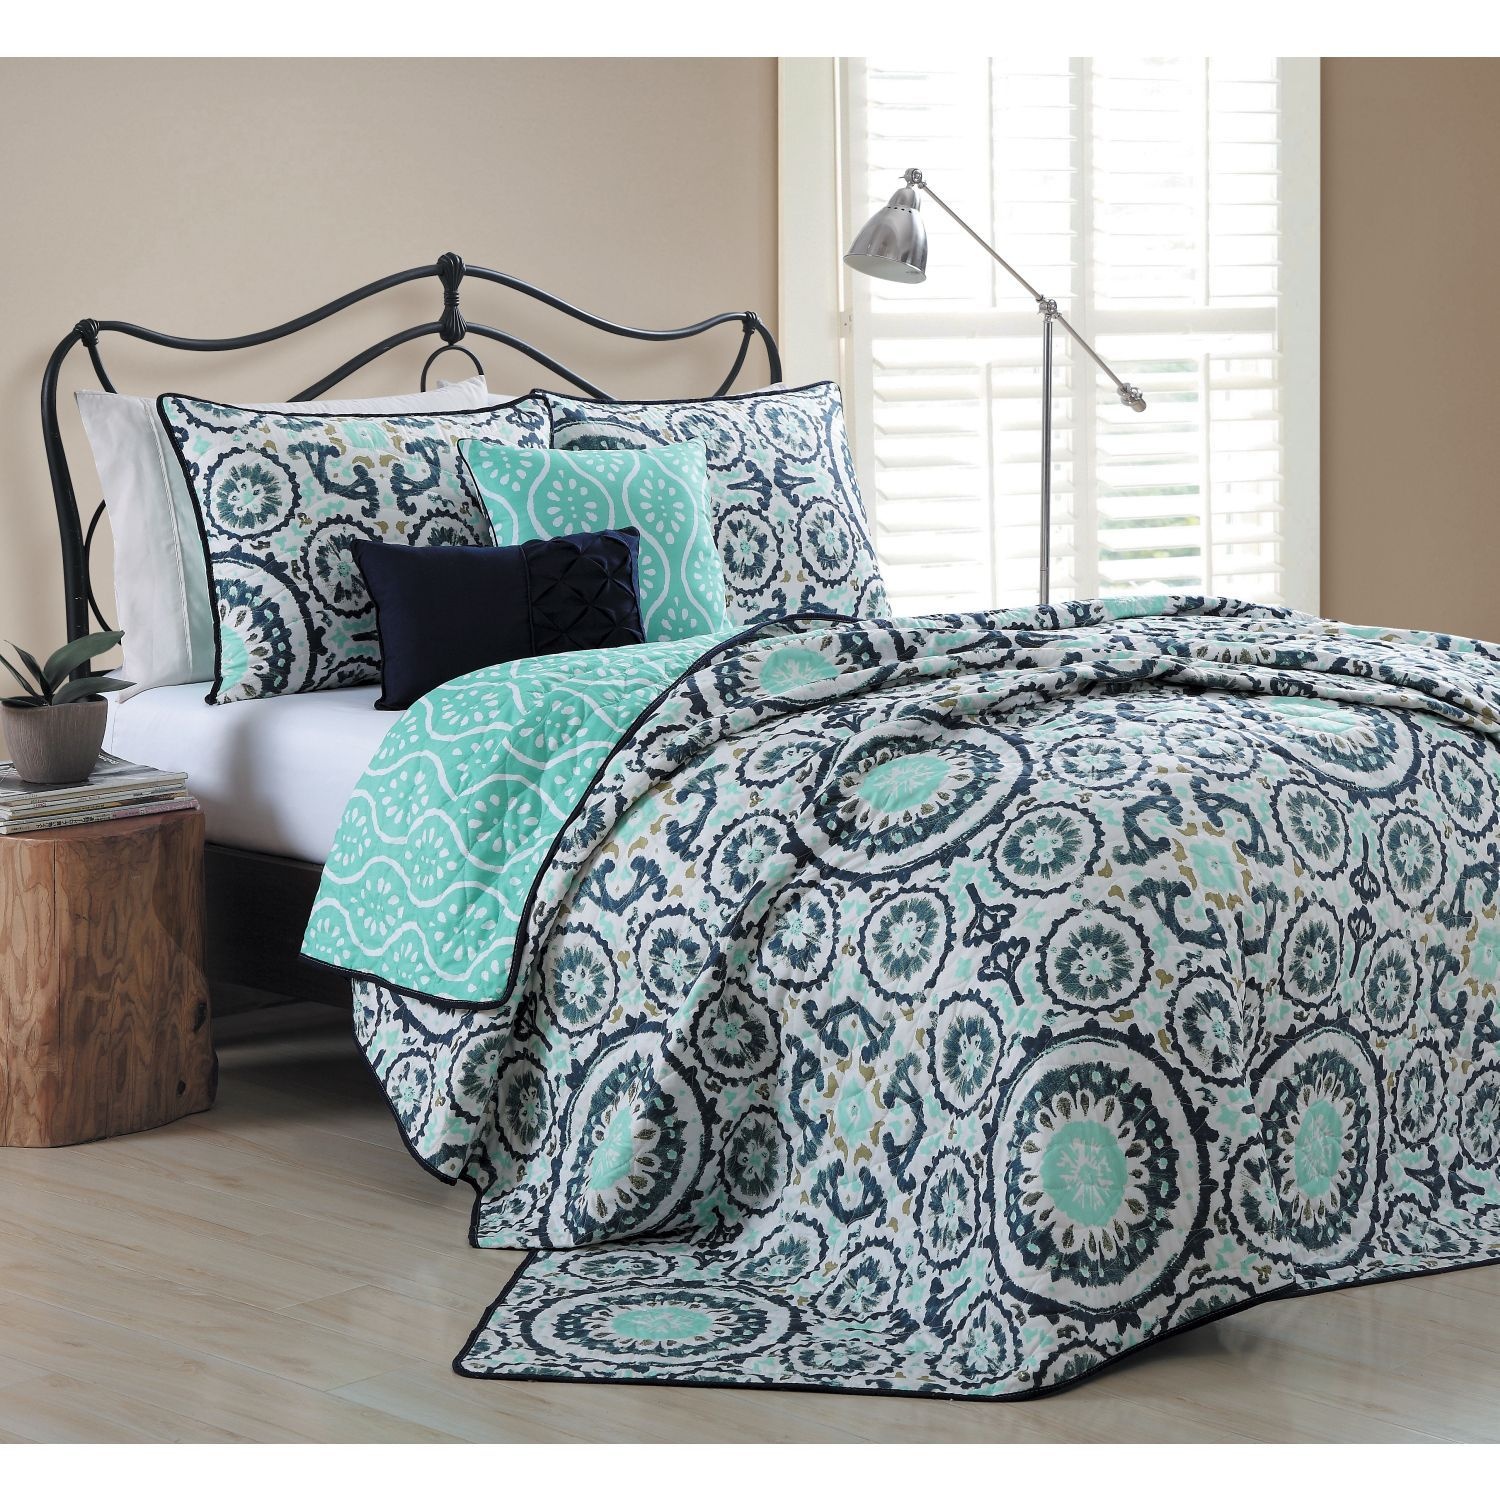 Dress Your Bed With This Leona 5 Piece Quilt Set Available